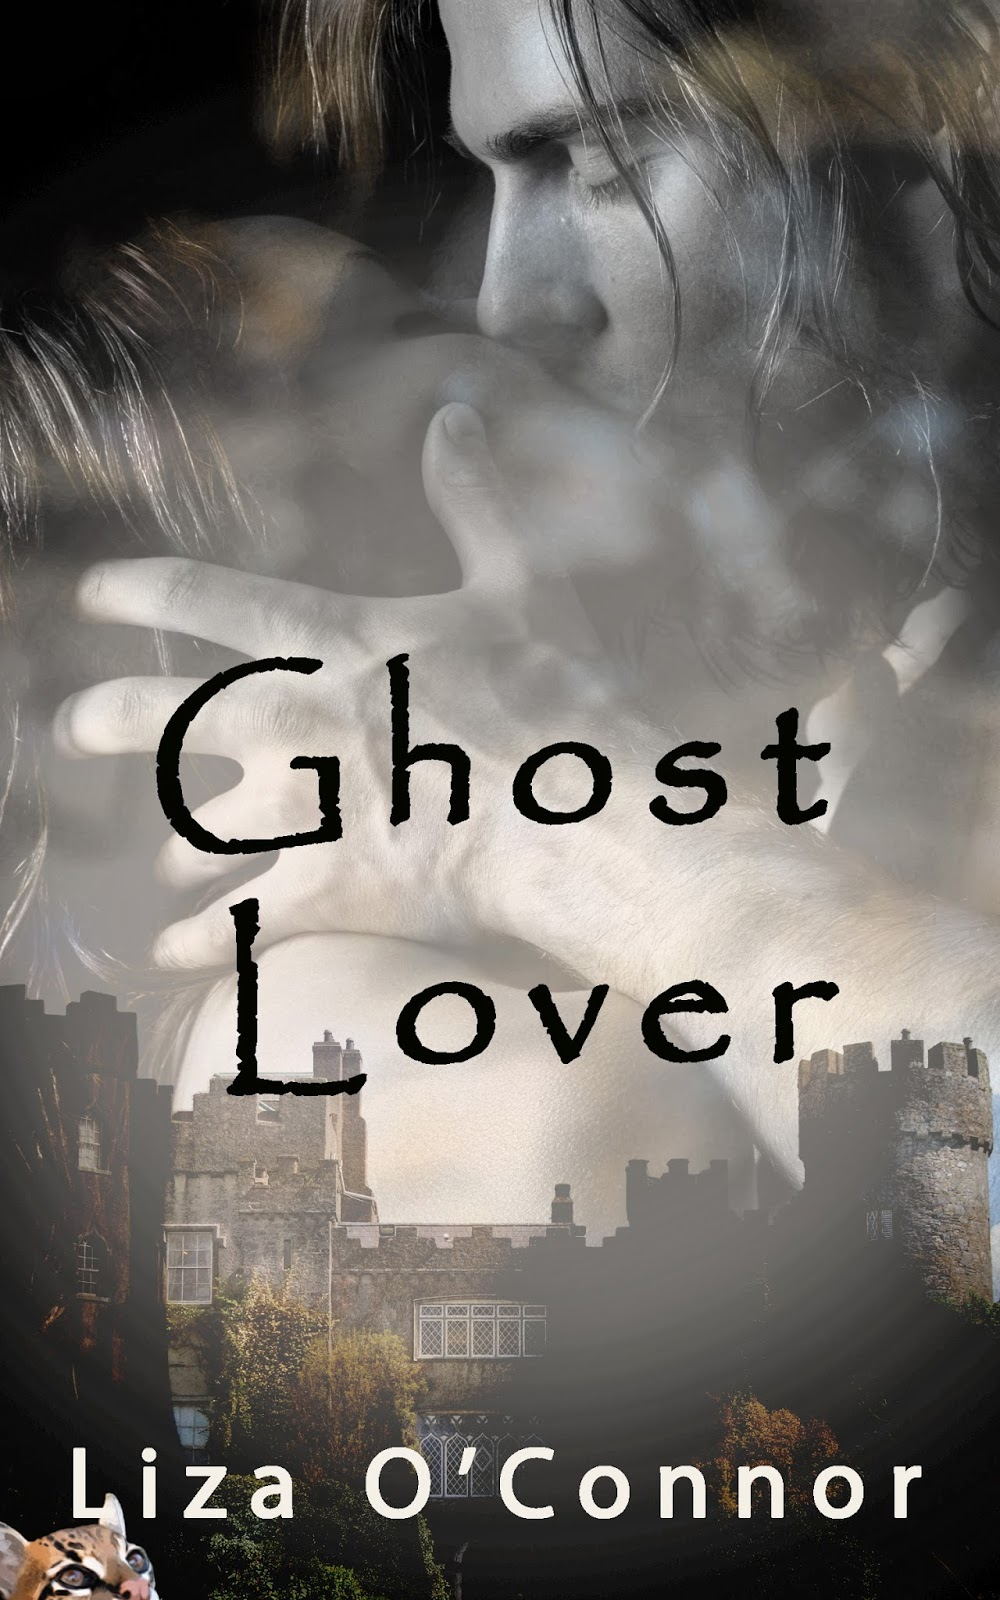 http://www.amazon.com/Ghost-Lover-Liza-OConnor-ebook/dp/B00I0FV7W2/ref=la_B00A82LHNO_1_1?s=books&ie=UTF8&qid=1395787648&sr=1-1